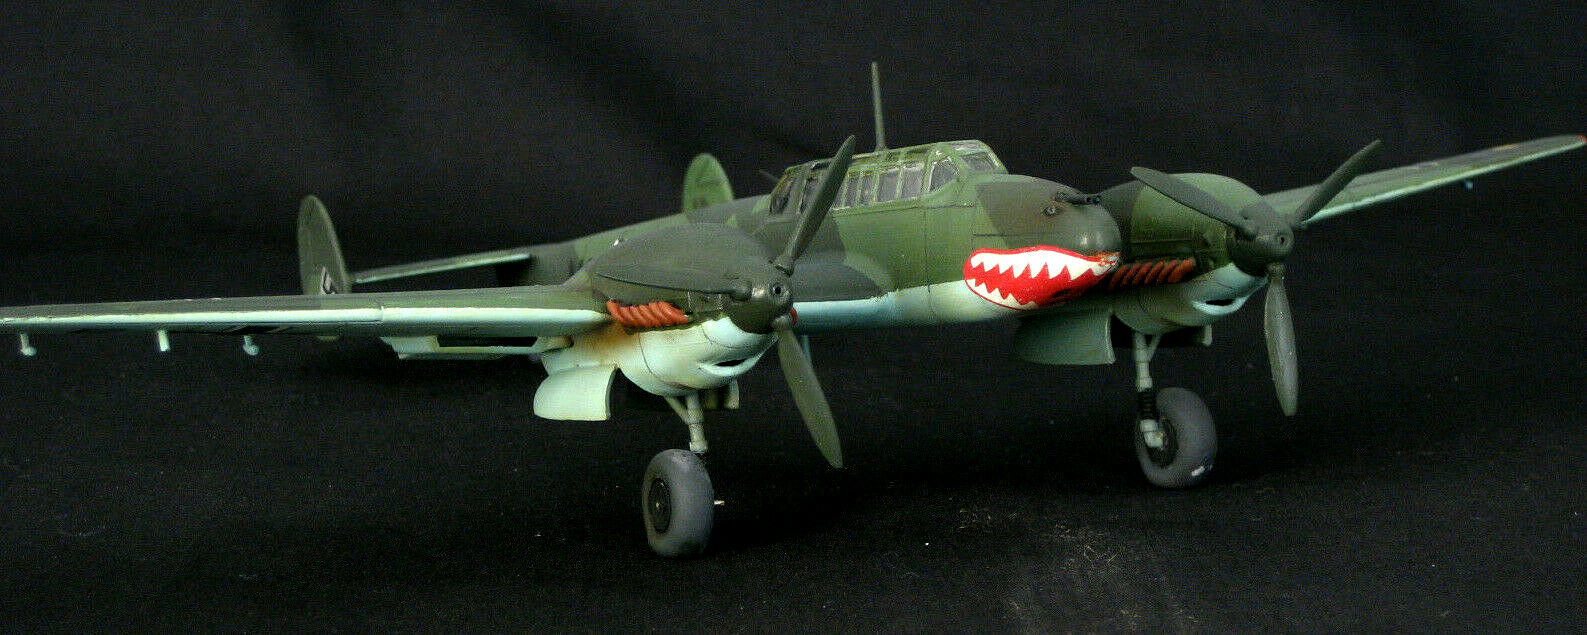 1 72 MESSESRCHMITT Bf110C BATTLE oF BRITAIN   PRO FULL BUILD & PAINT SCALE MODEL  confortable